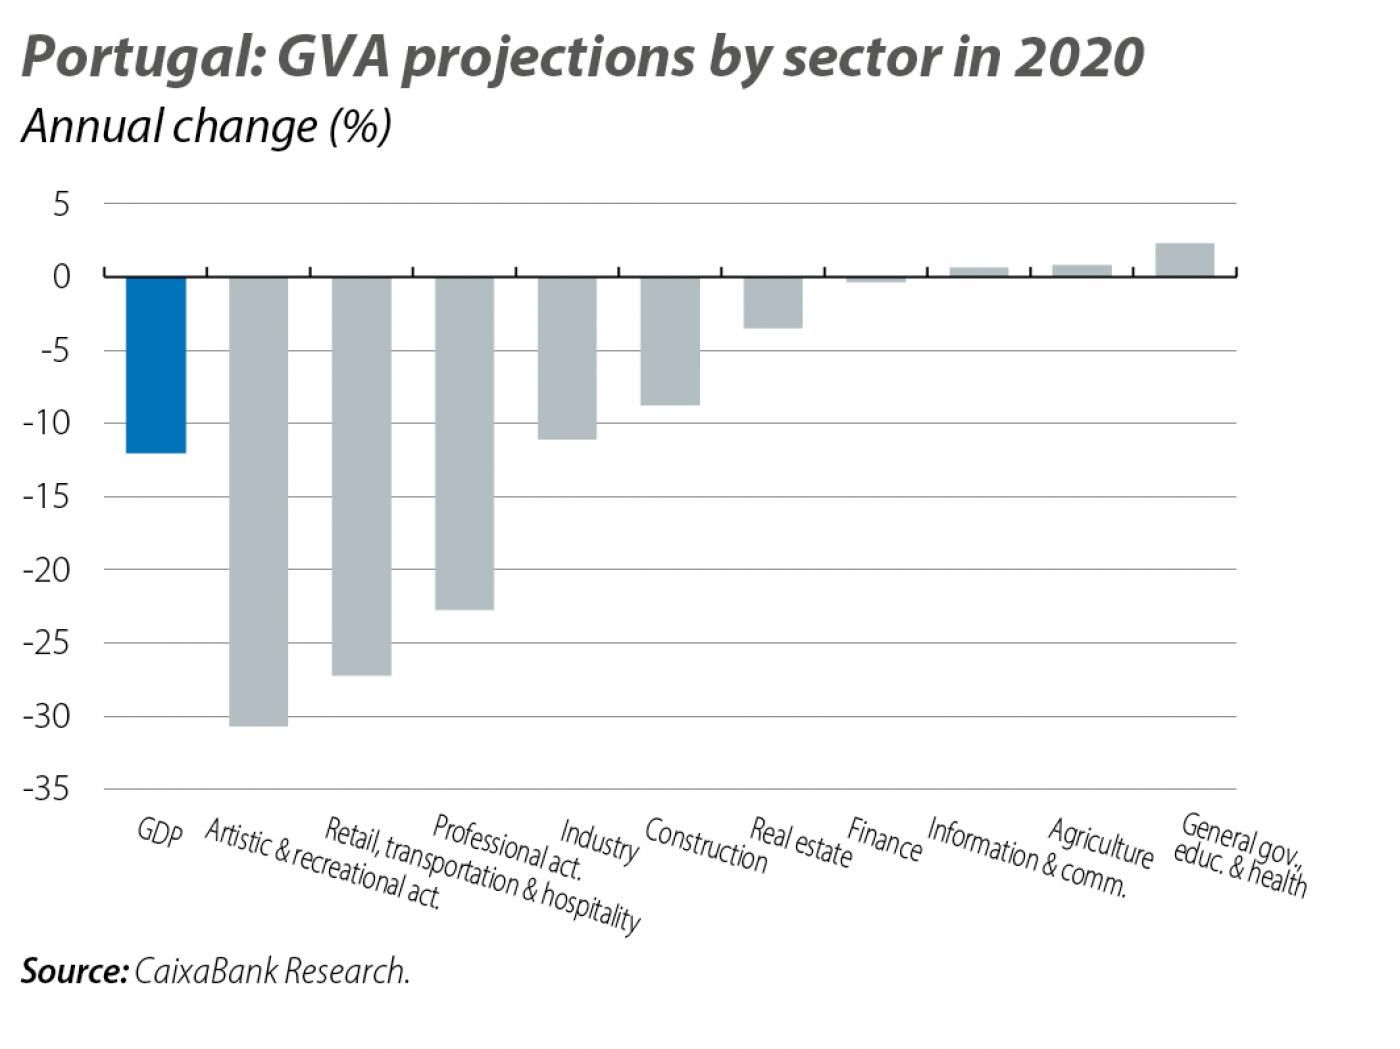 Portuga l: GVA projections by sector in 2020